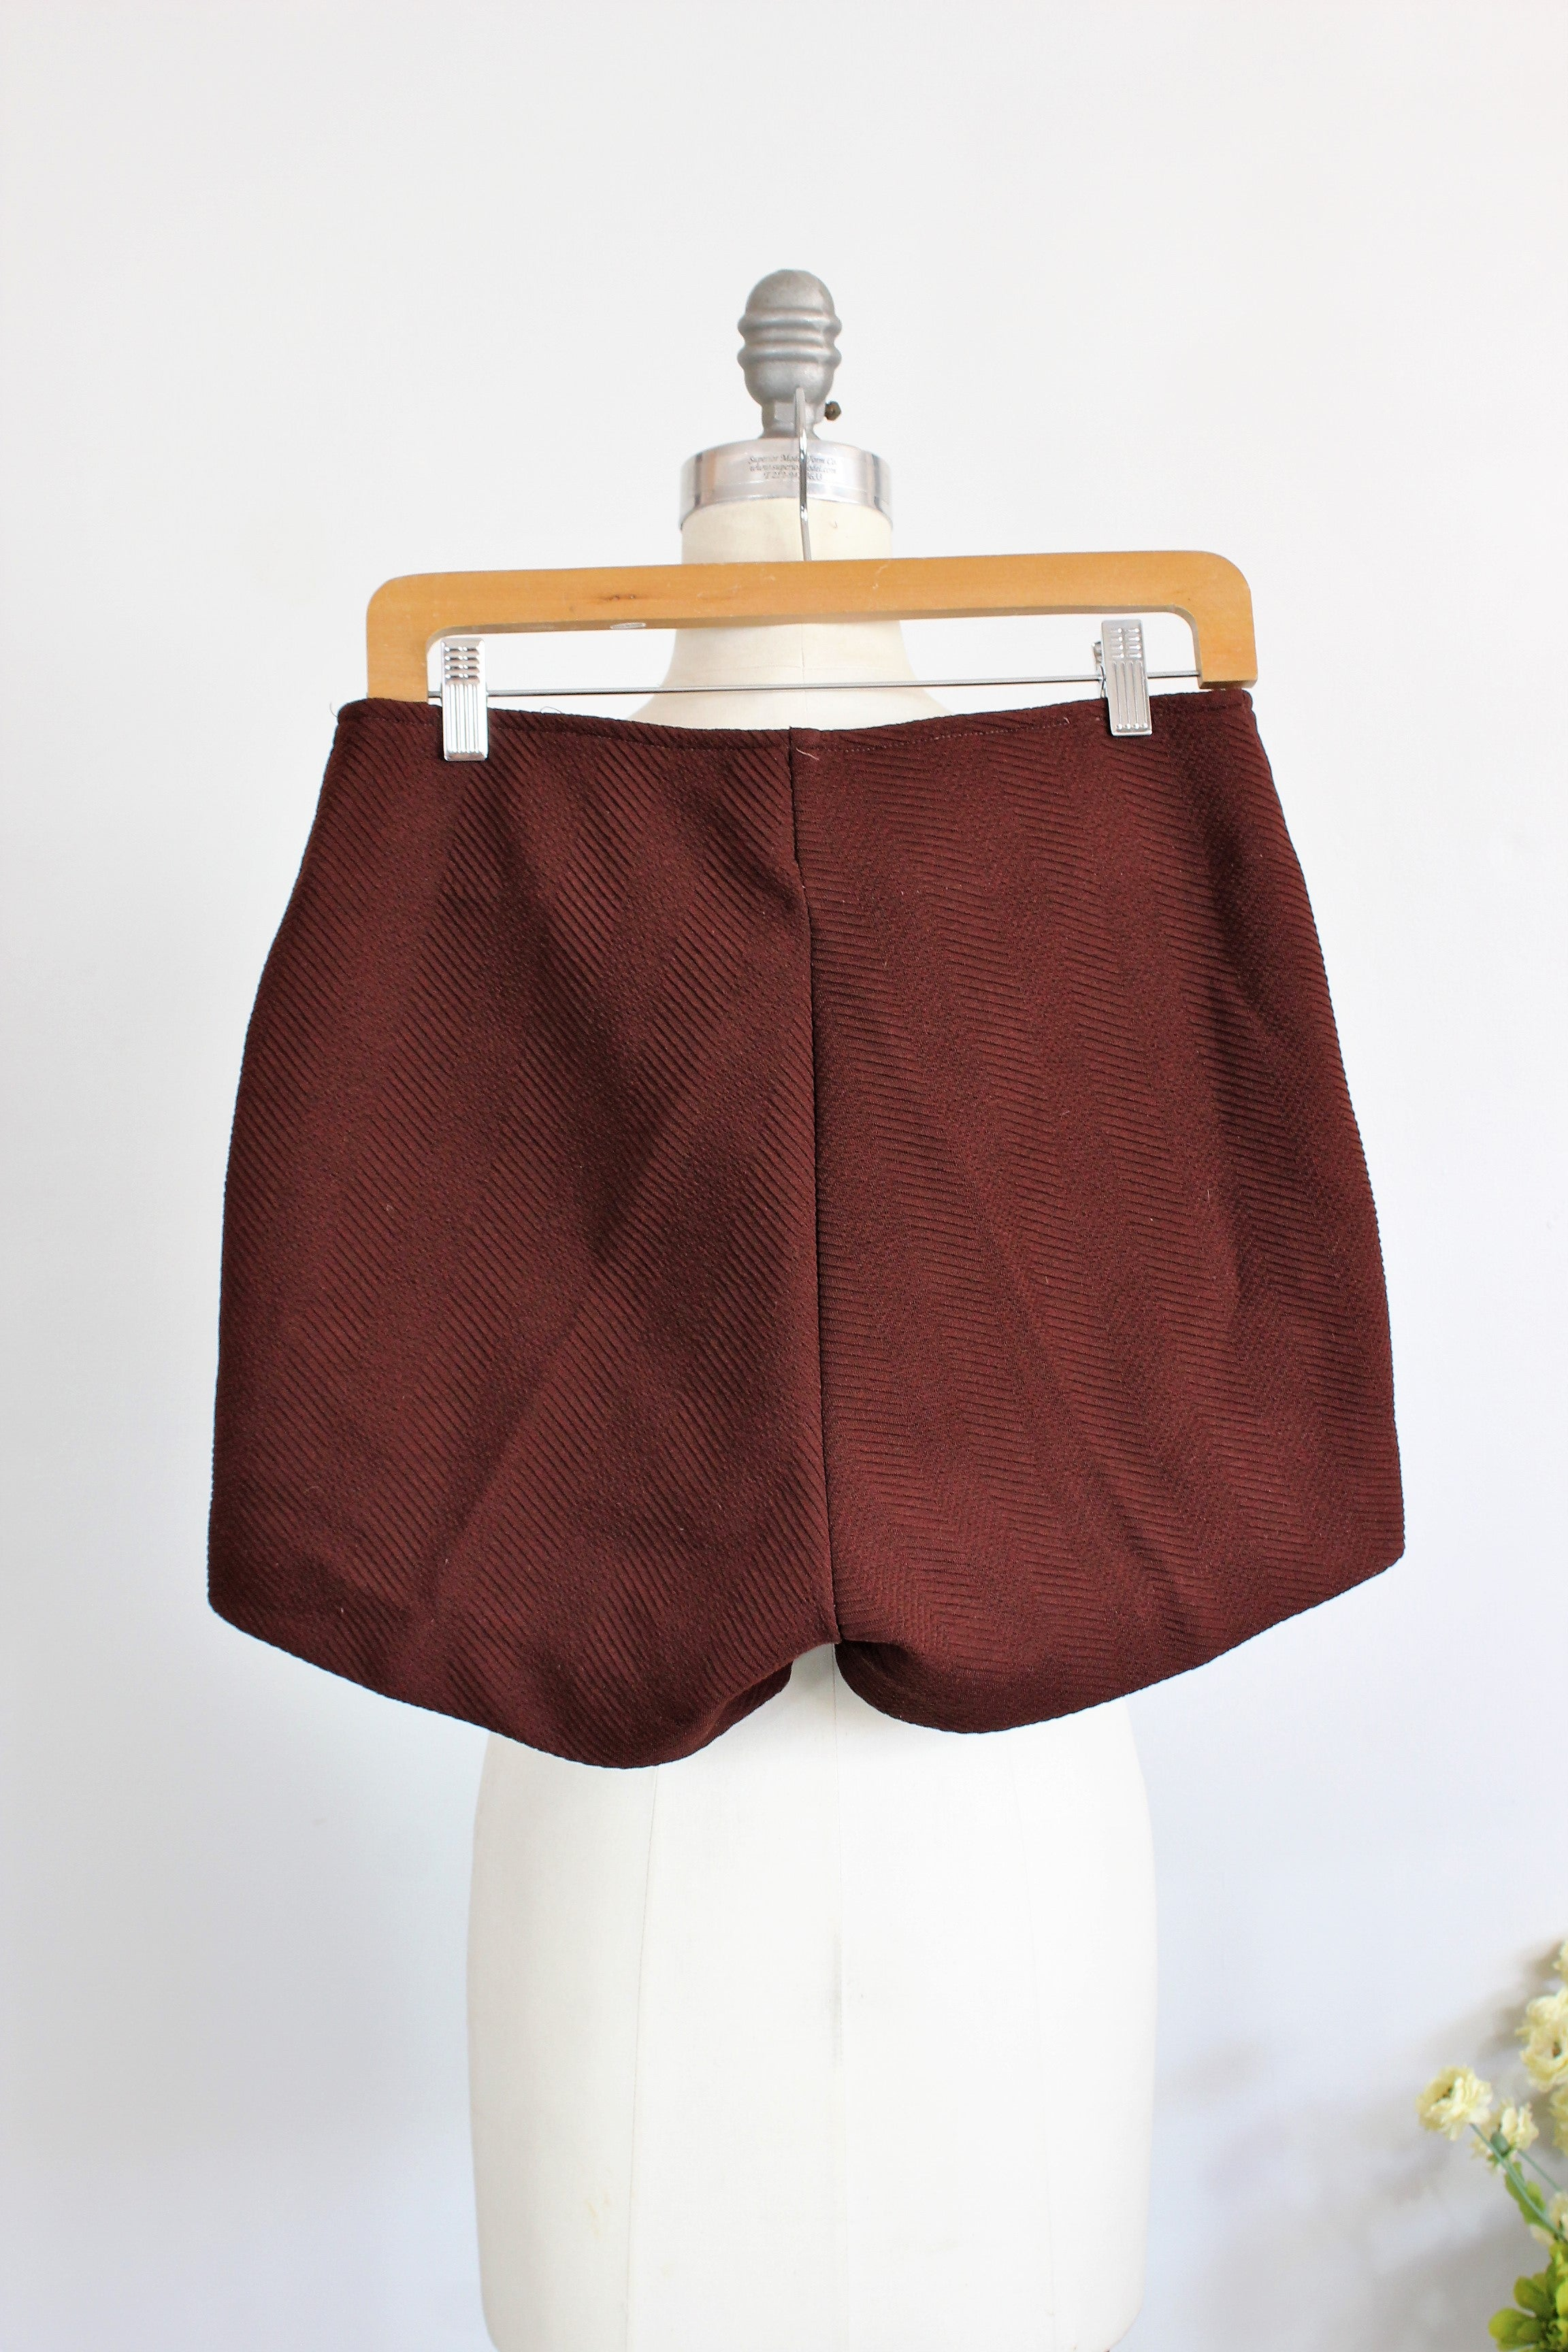 Vintage 1970s Brown Shorts by Hada